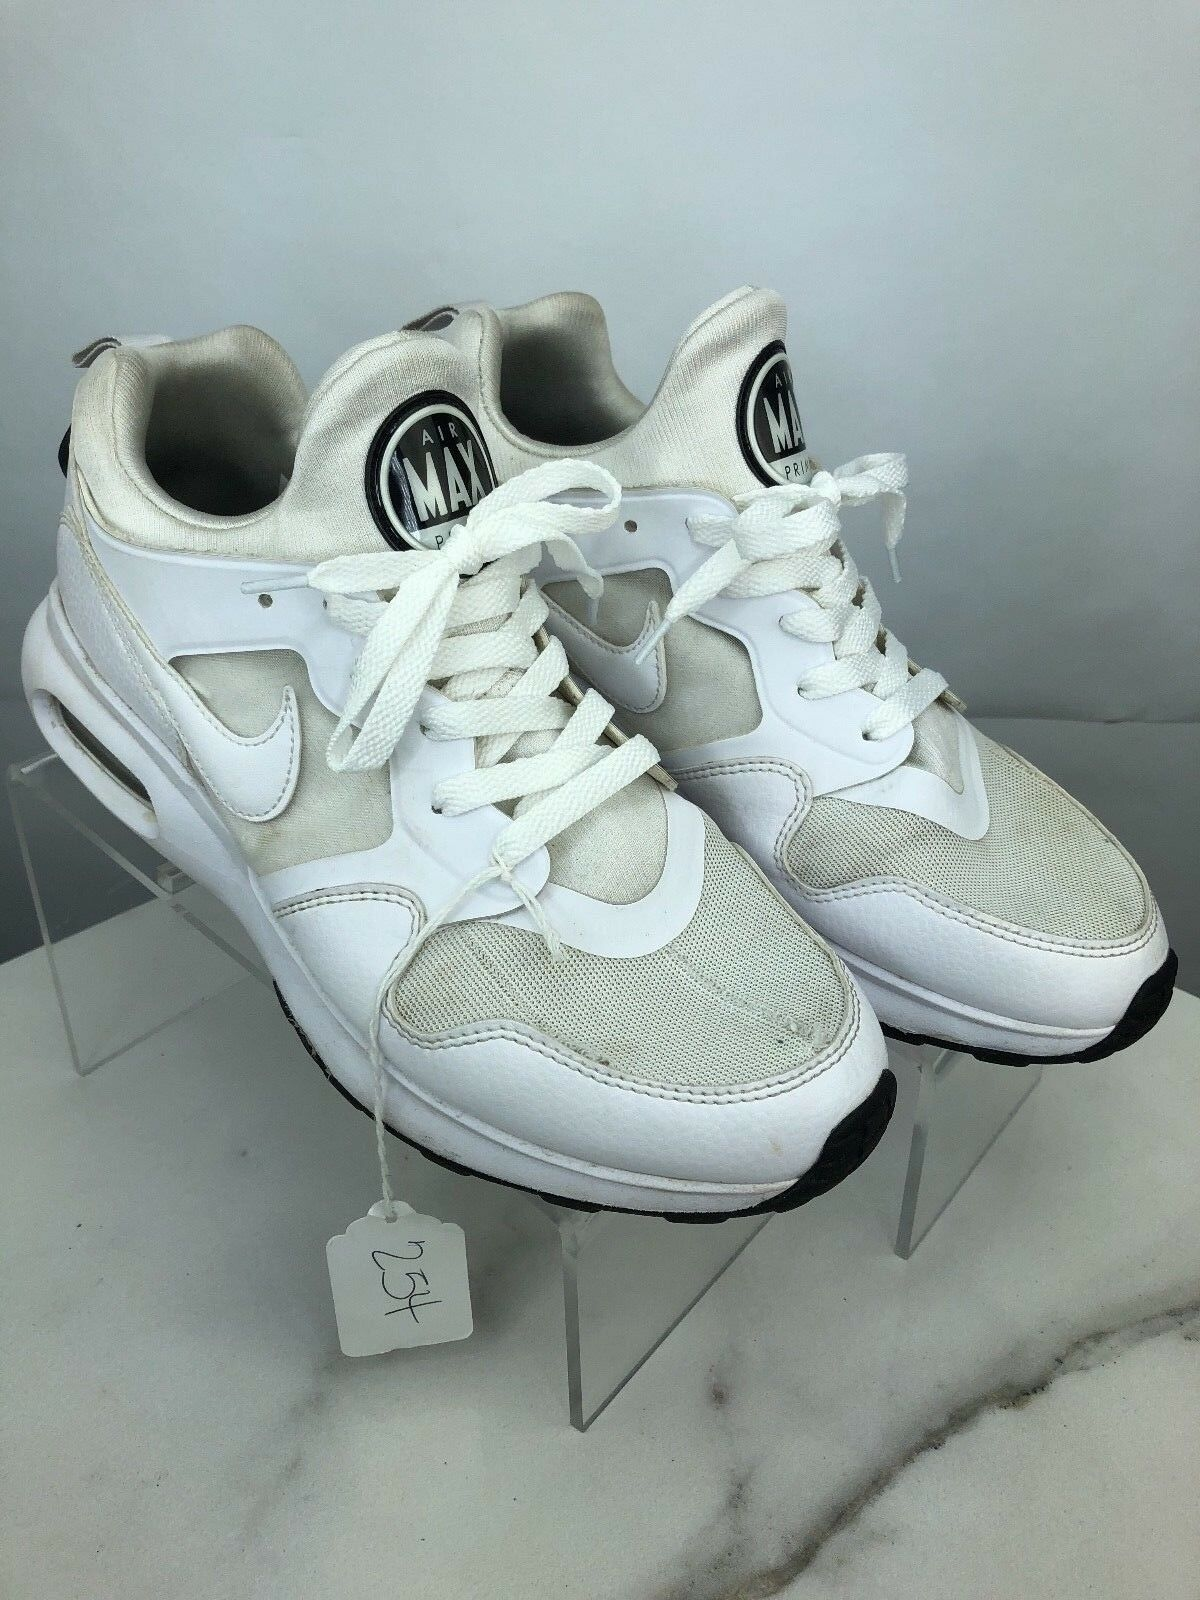 Nike Air Max Prime Low White Sneaker, 876068-100  Men's Comfortable Cheap and beautiful fashion